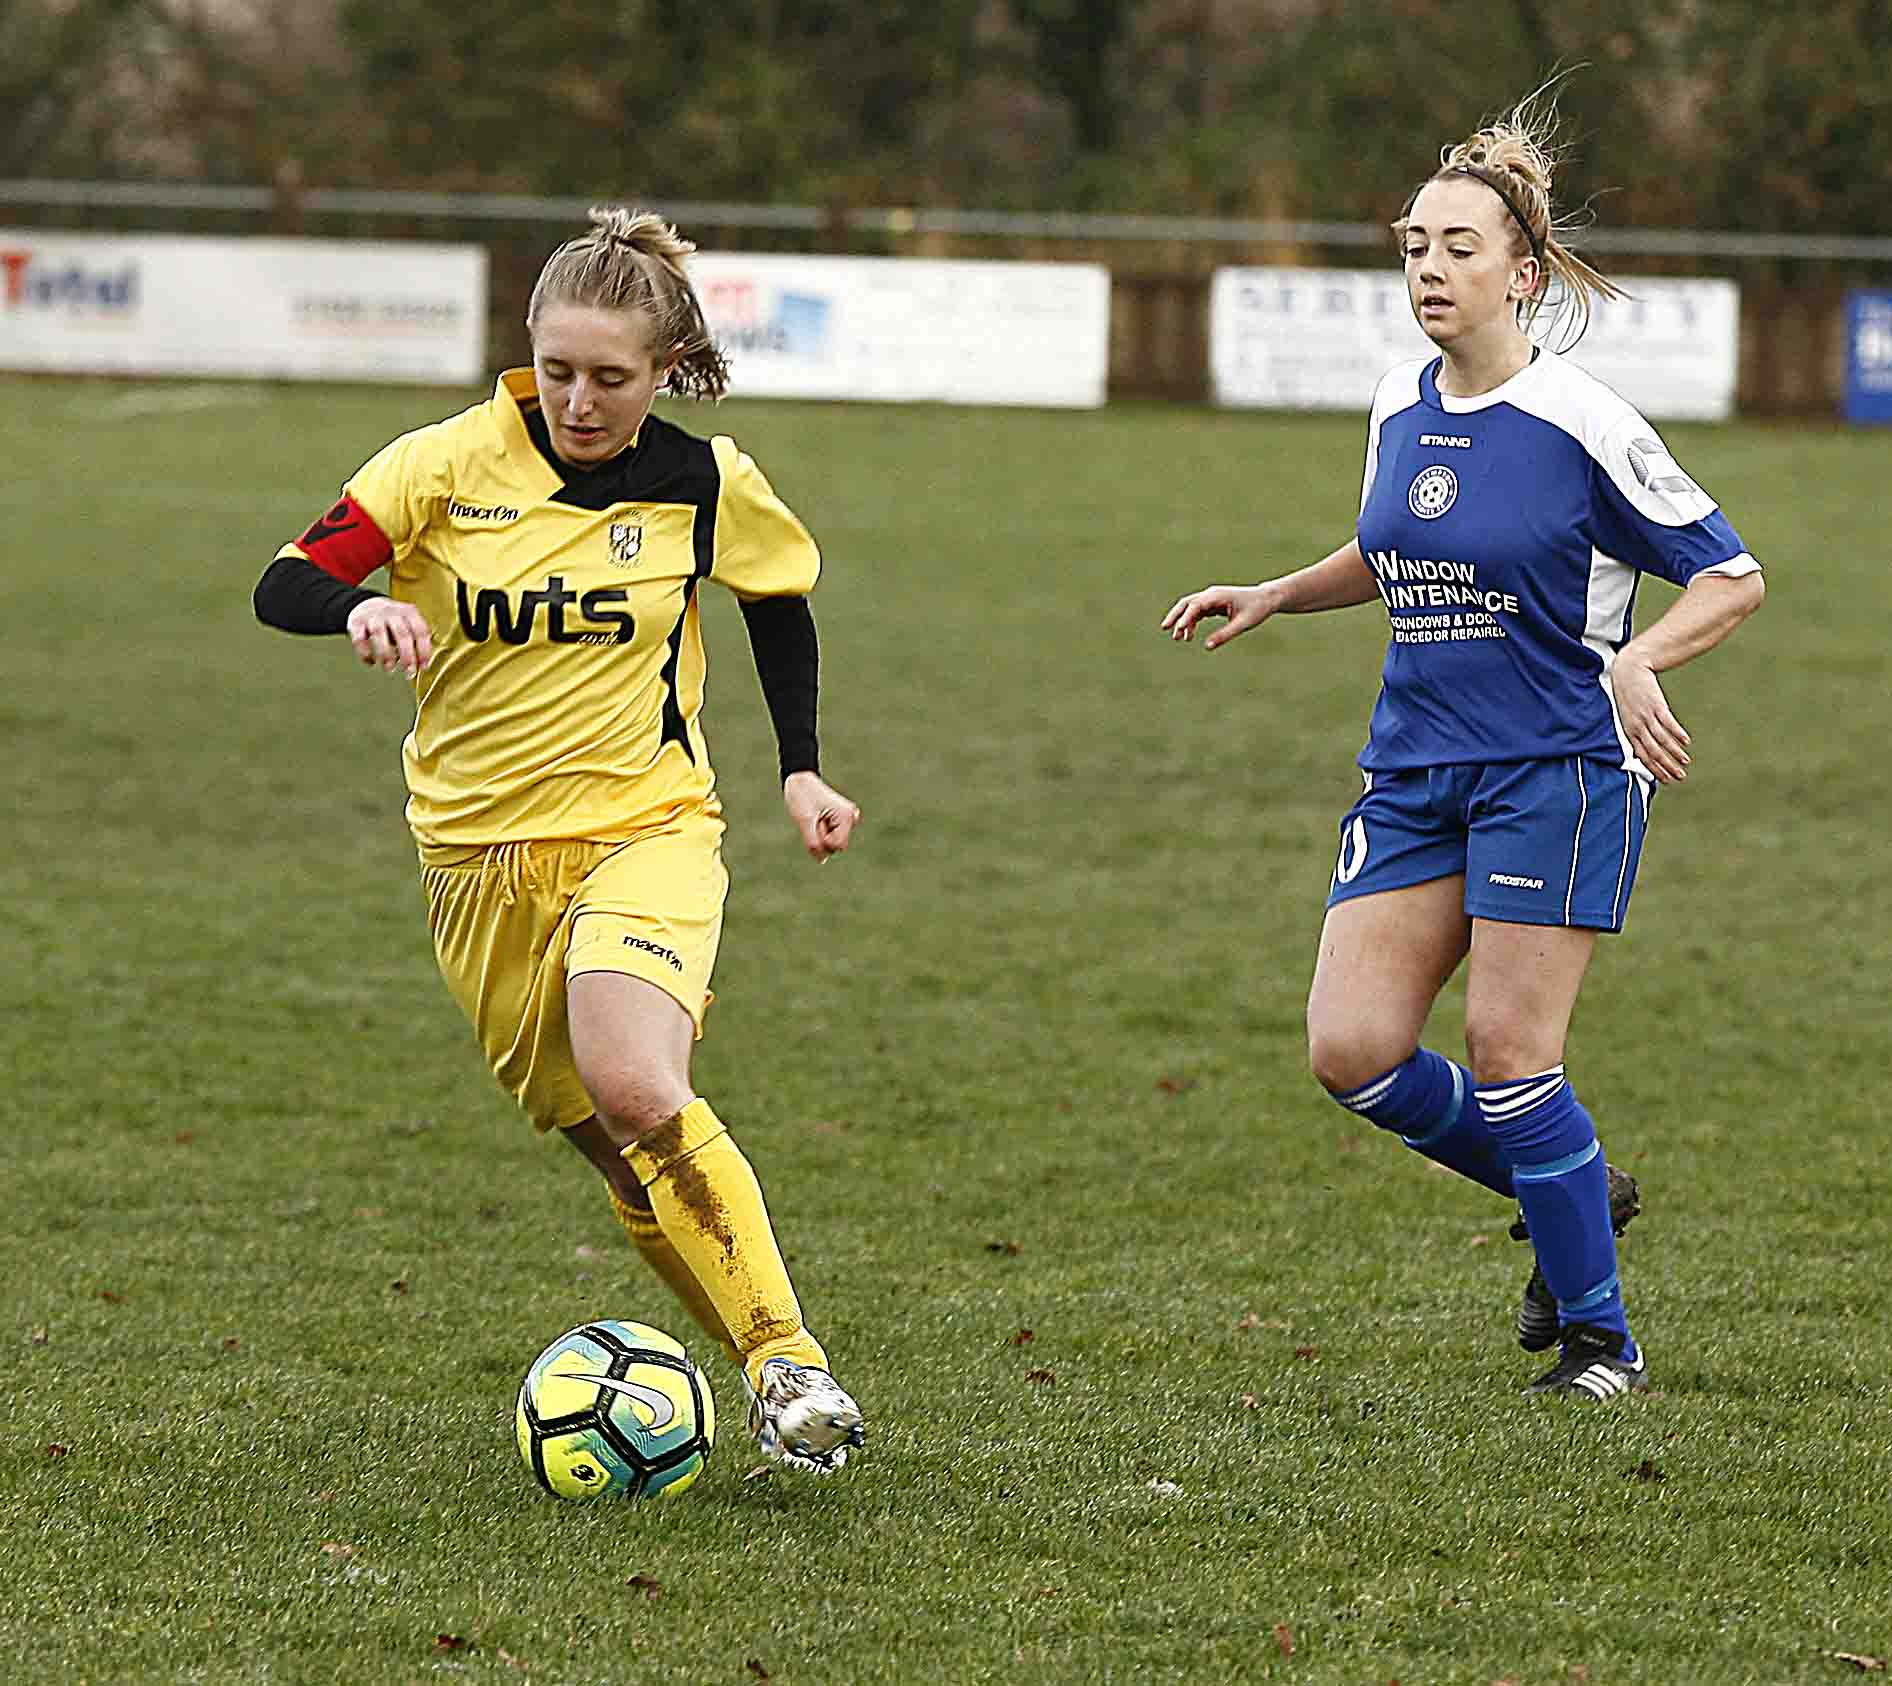 maria warman buckland ladies v plympton ladies